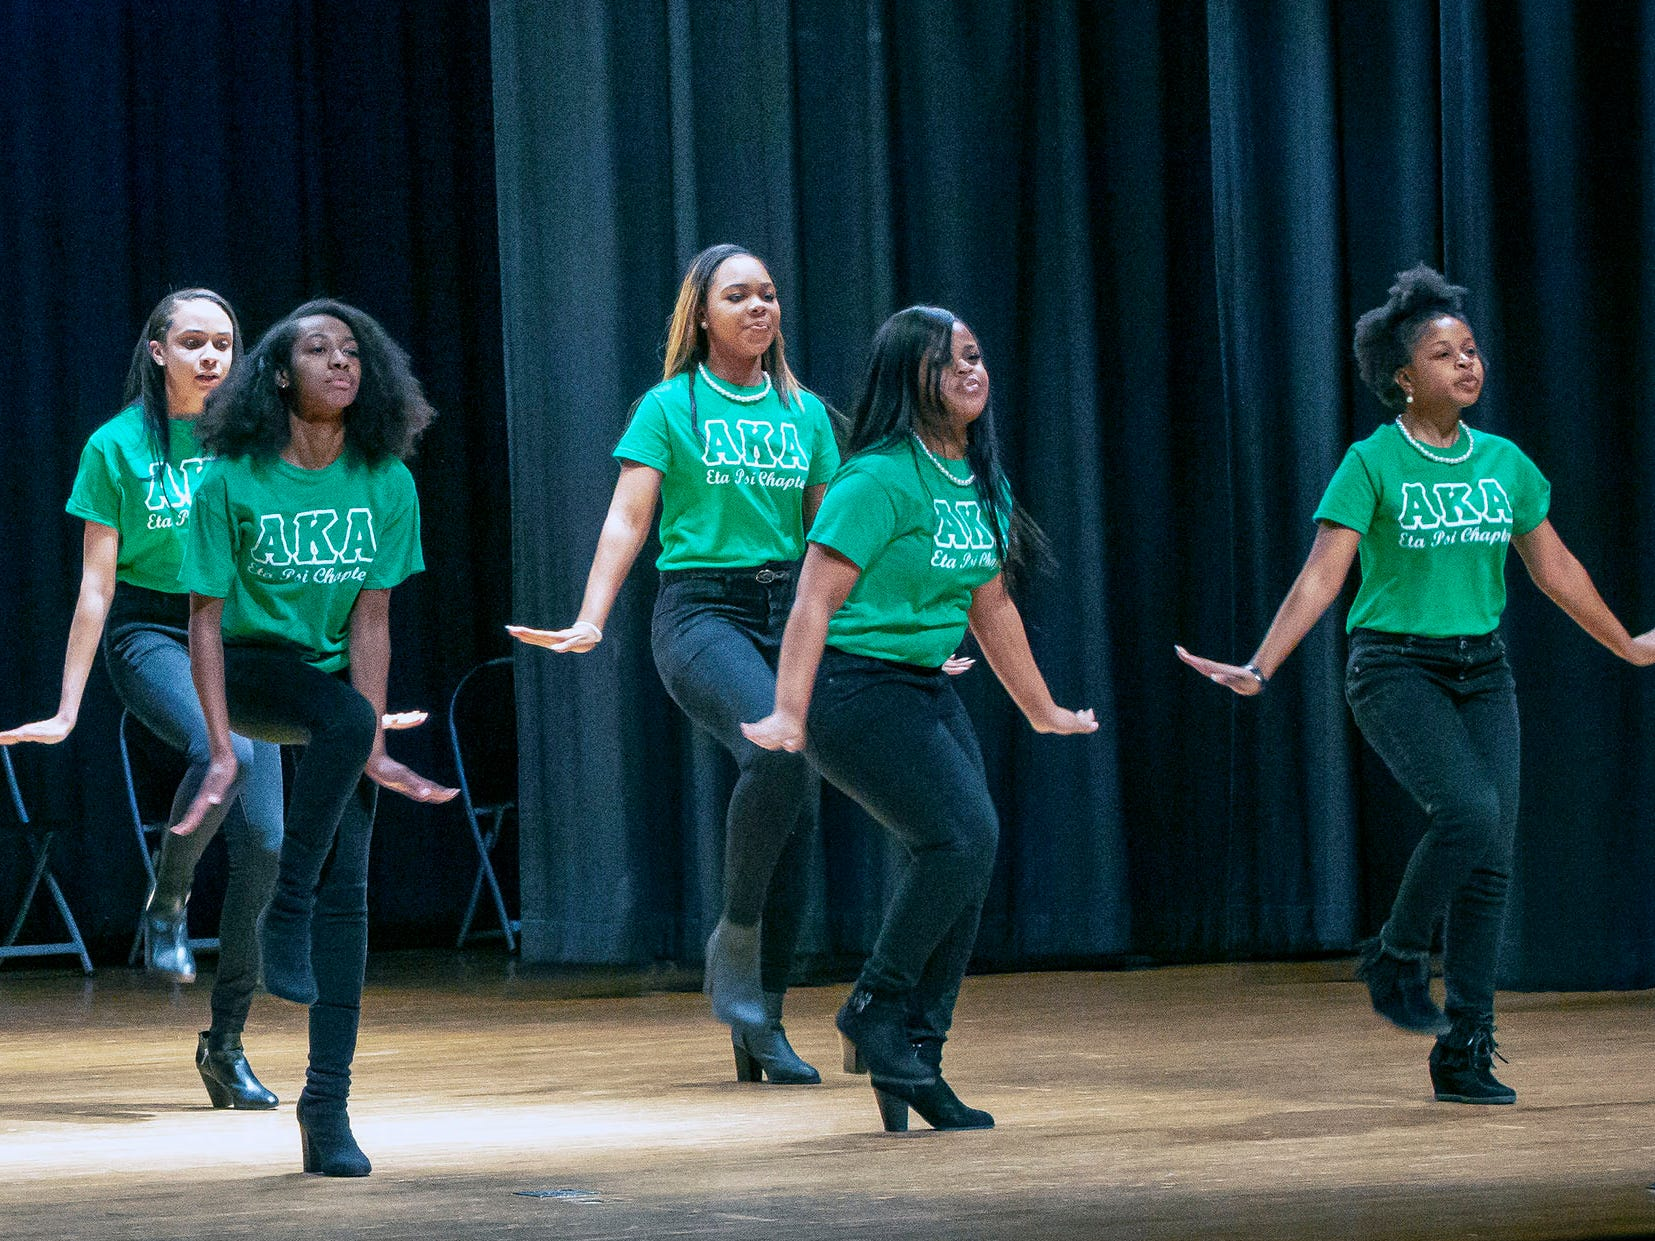 Members of the MTSU's Alpha Kappa Alpha sorority chapter  perform at the African-American Cultural Celebration held at Patterson Park Community Center.